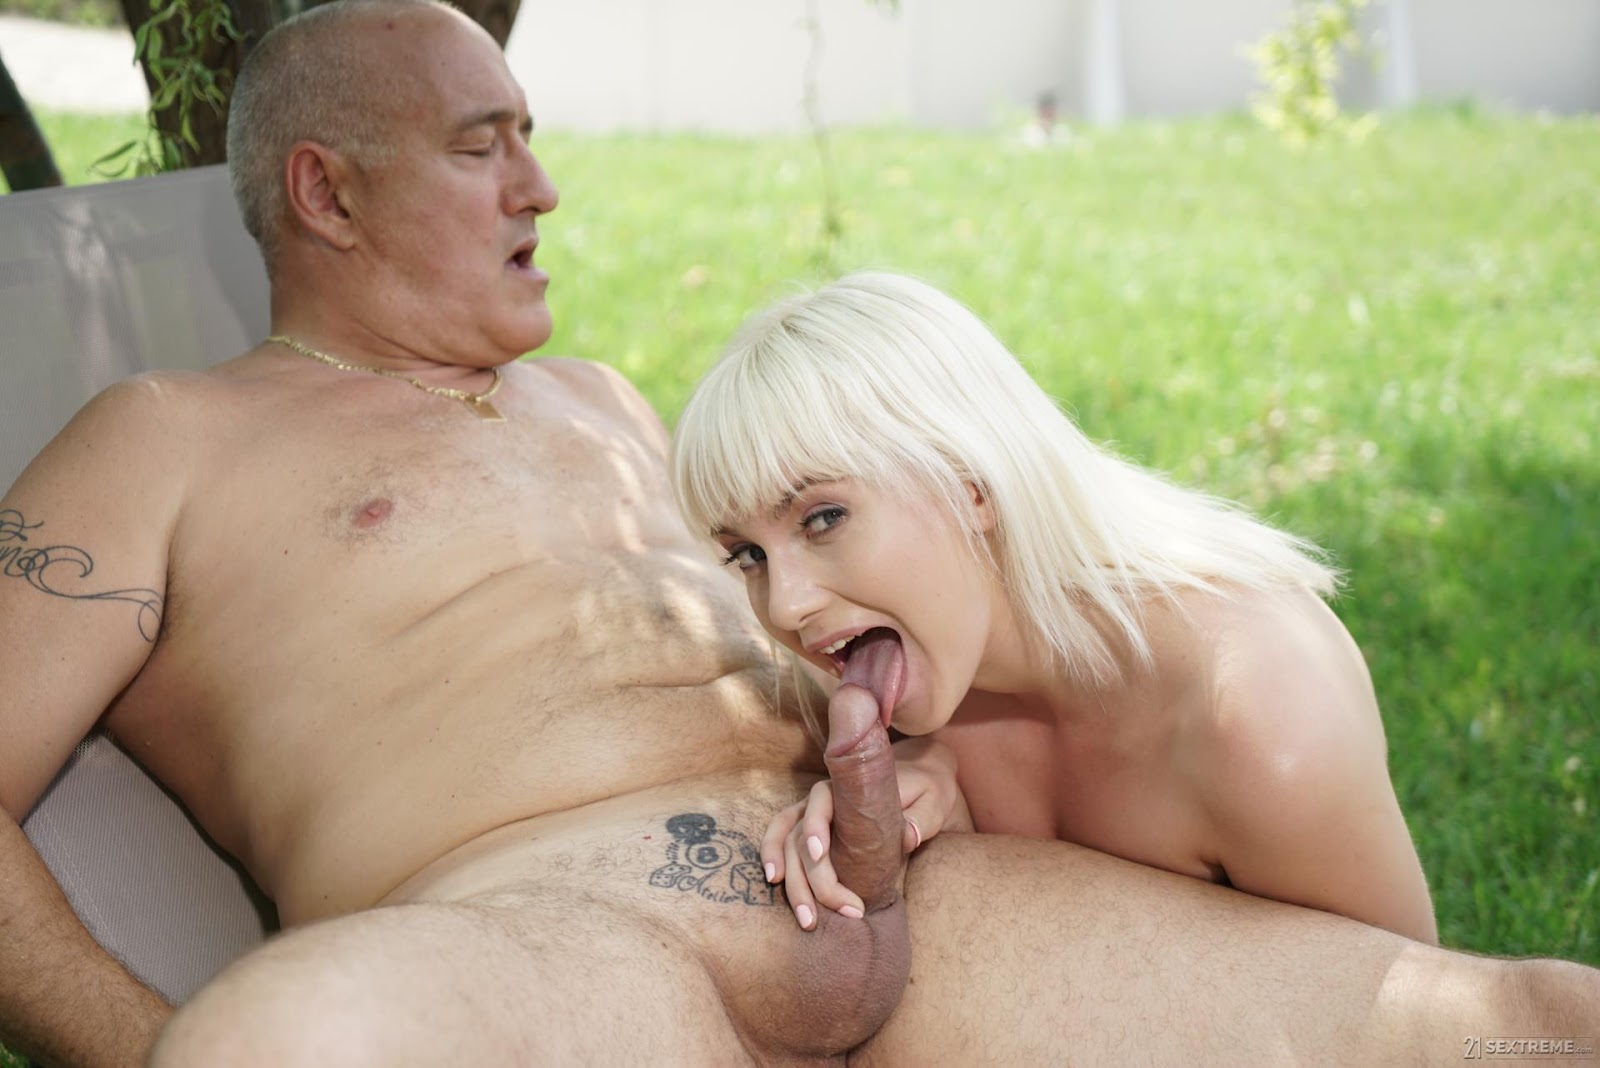 Summer Distraction,21 SEXTREME, 4K, ANAL,THREESOME, UNCENSORED, WESTEN, WESTEN PORN,BrunoSX ,Miss Melissa